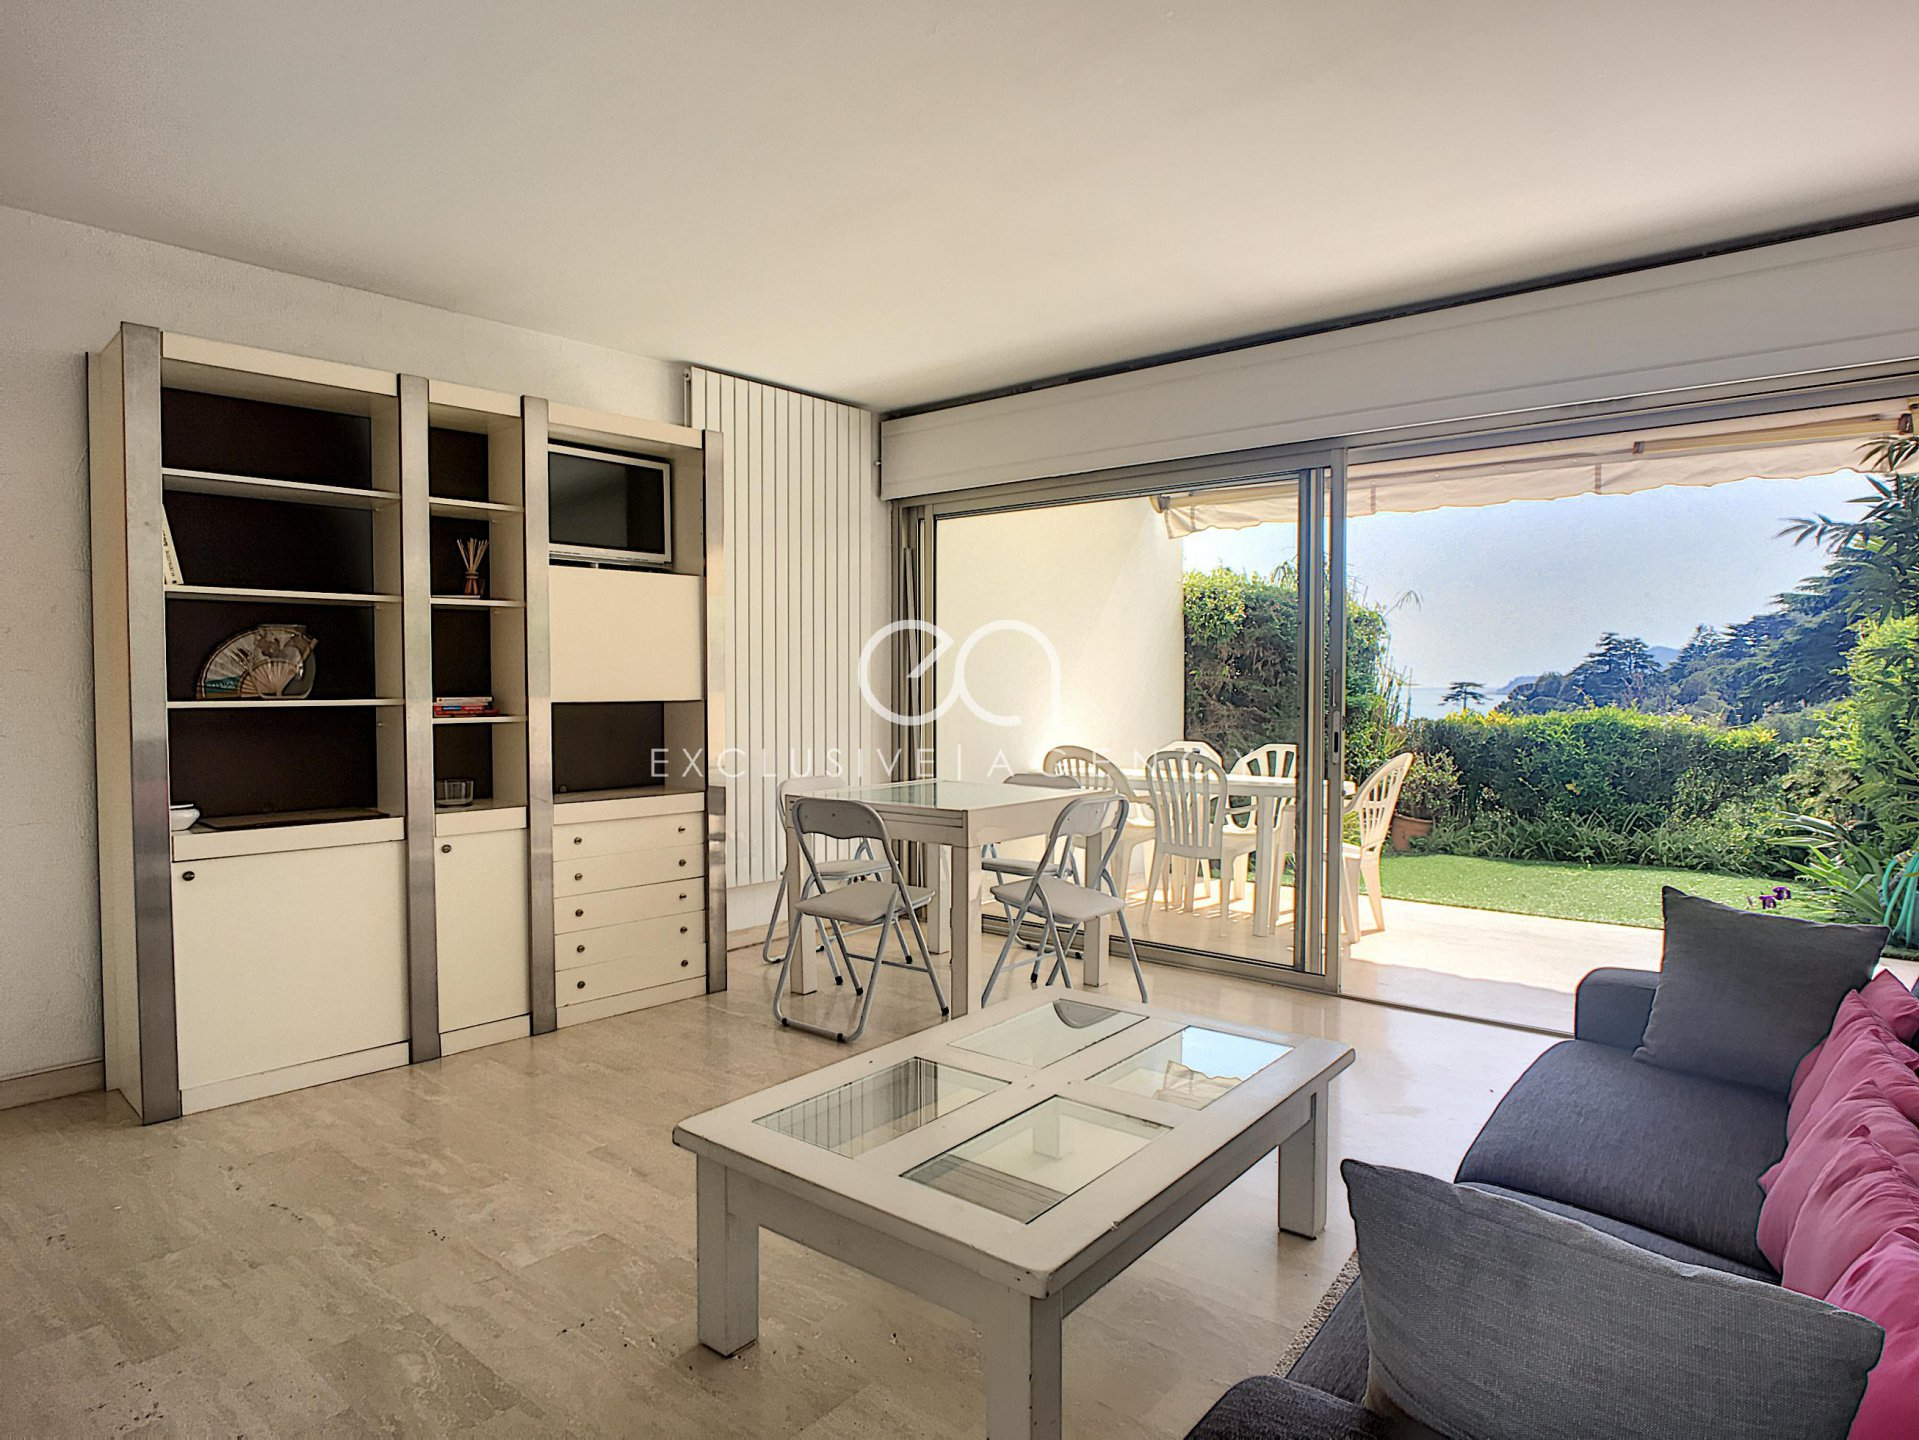 Rent Cannes furnised 59,10m² 2-bedroom apartment, panoramic view, tennis and pool.